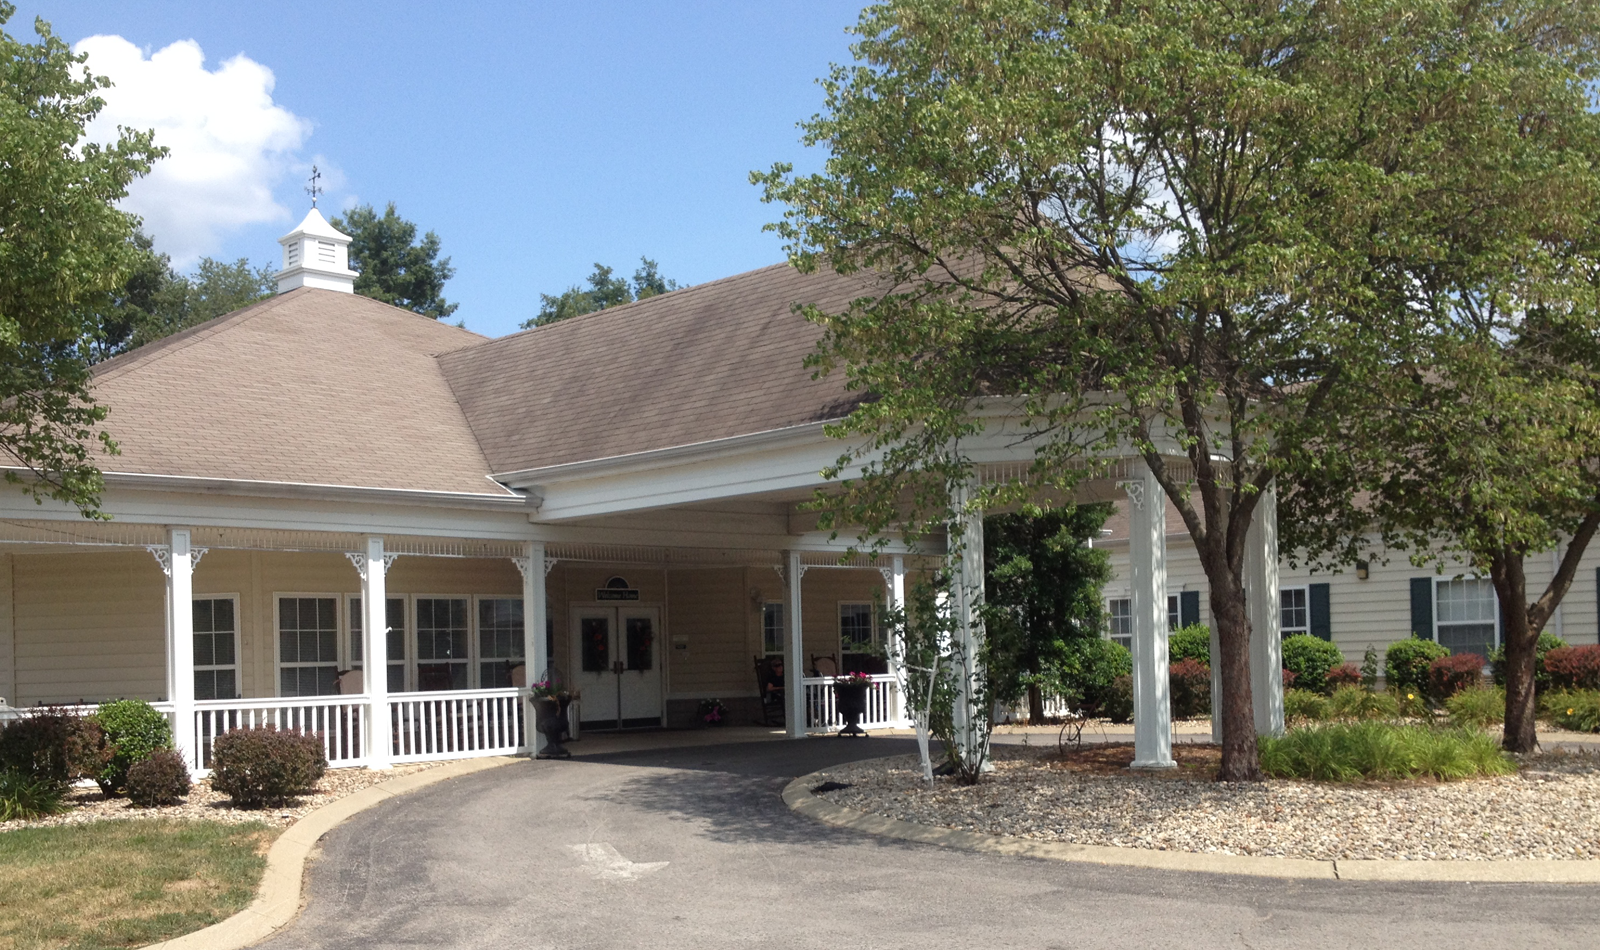 morningview gardens - Regency Gardens Nursing Home